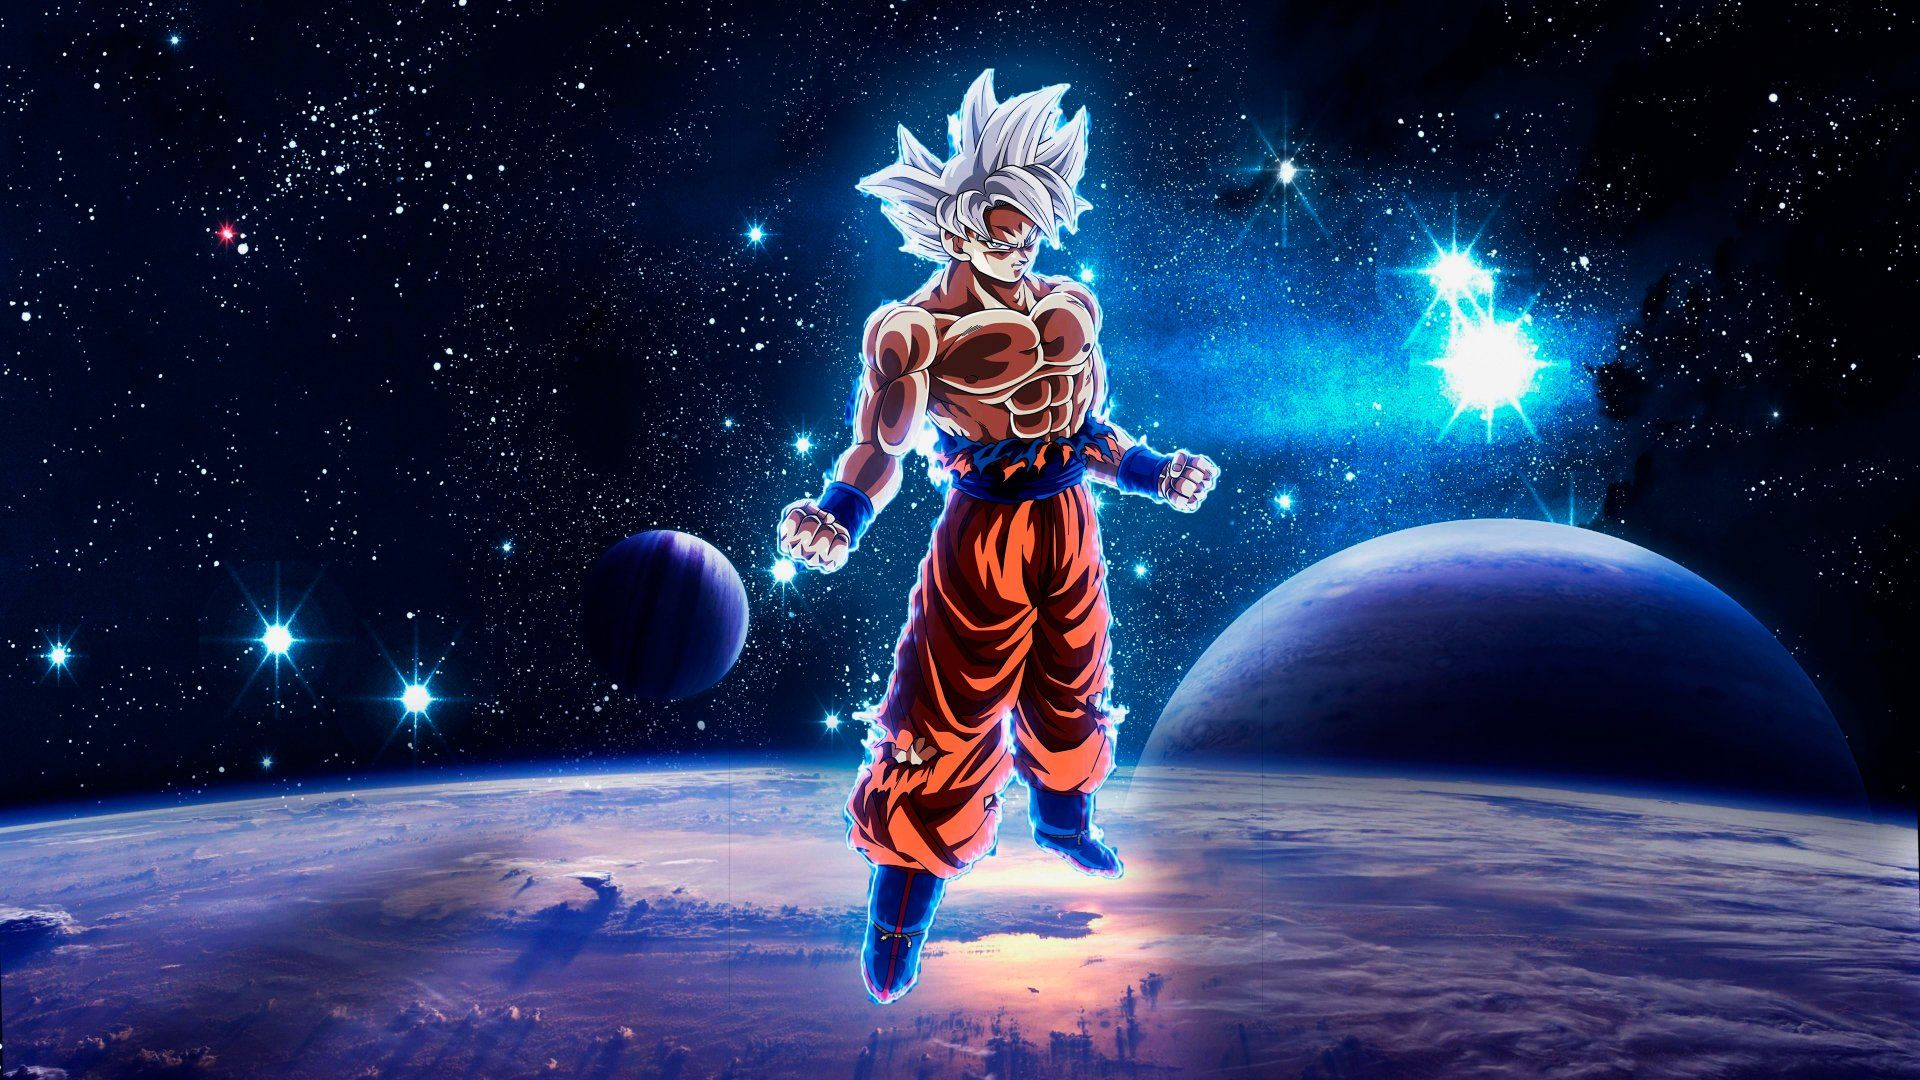 Goku Ultra Instinct 4k Ultra Hd Wallpaper And Hintergrund Goku Wallpaper Goku Ultra Instinct Wallpaper Dragon Ball Wallpapers